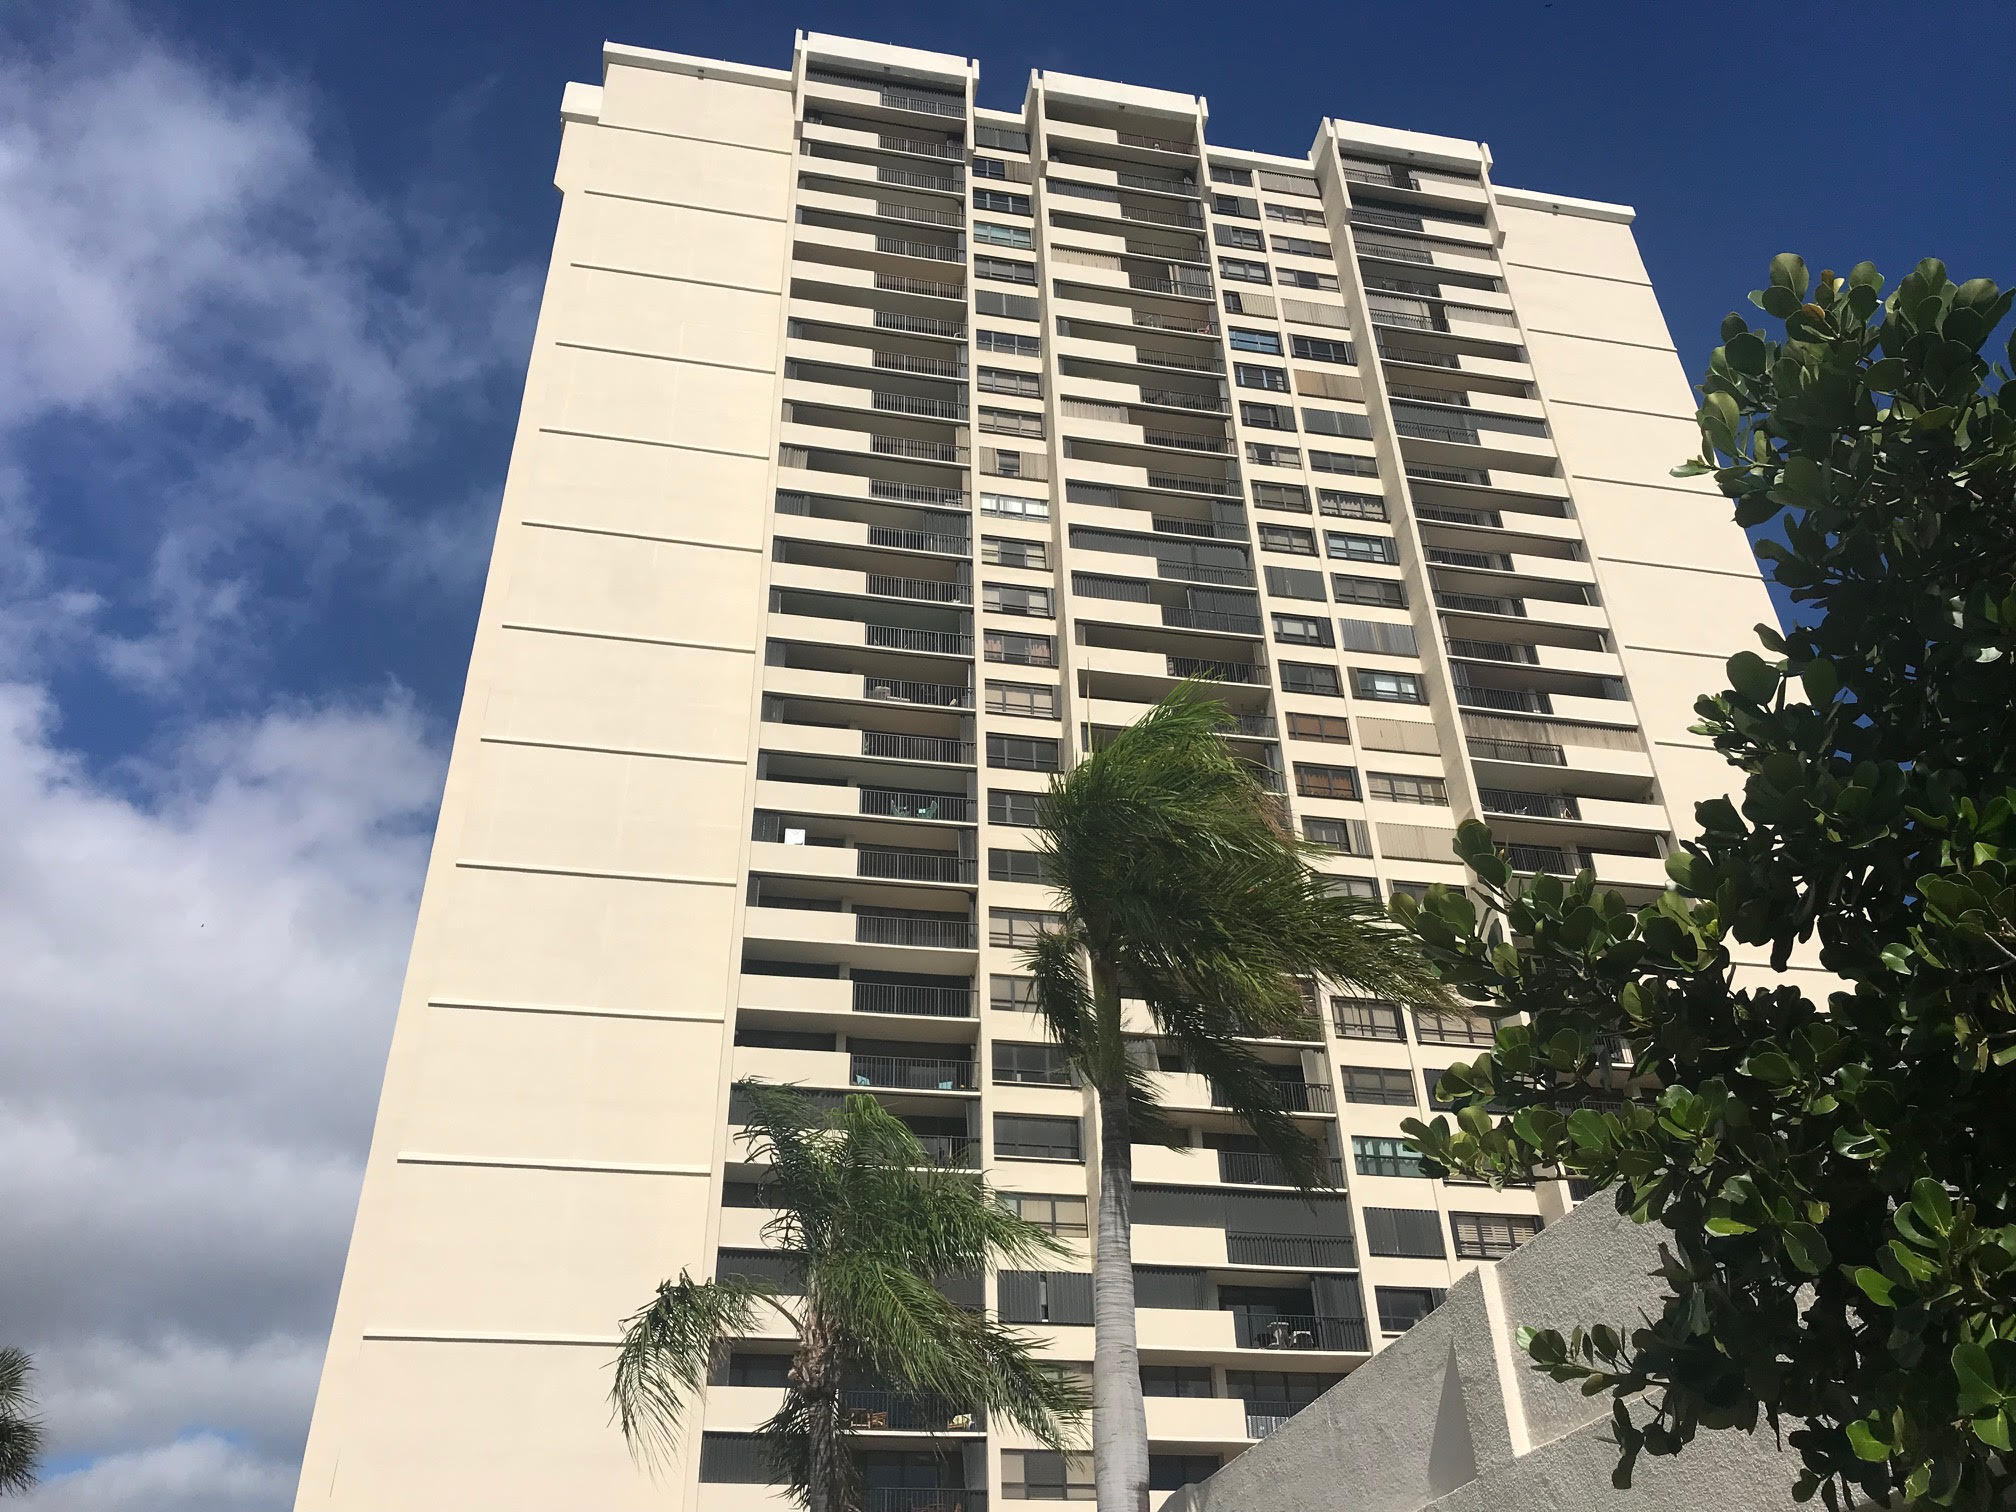 5600 Flagler Drive 1201, West Palm Beach, Florida 33407, 2 Bedrooms Bedrooms, ,2 BathroomsBathrooms,F,Condominium,Flagler,RX-10589240